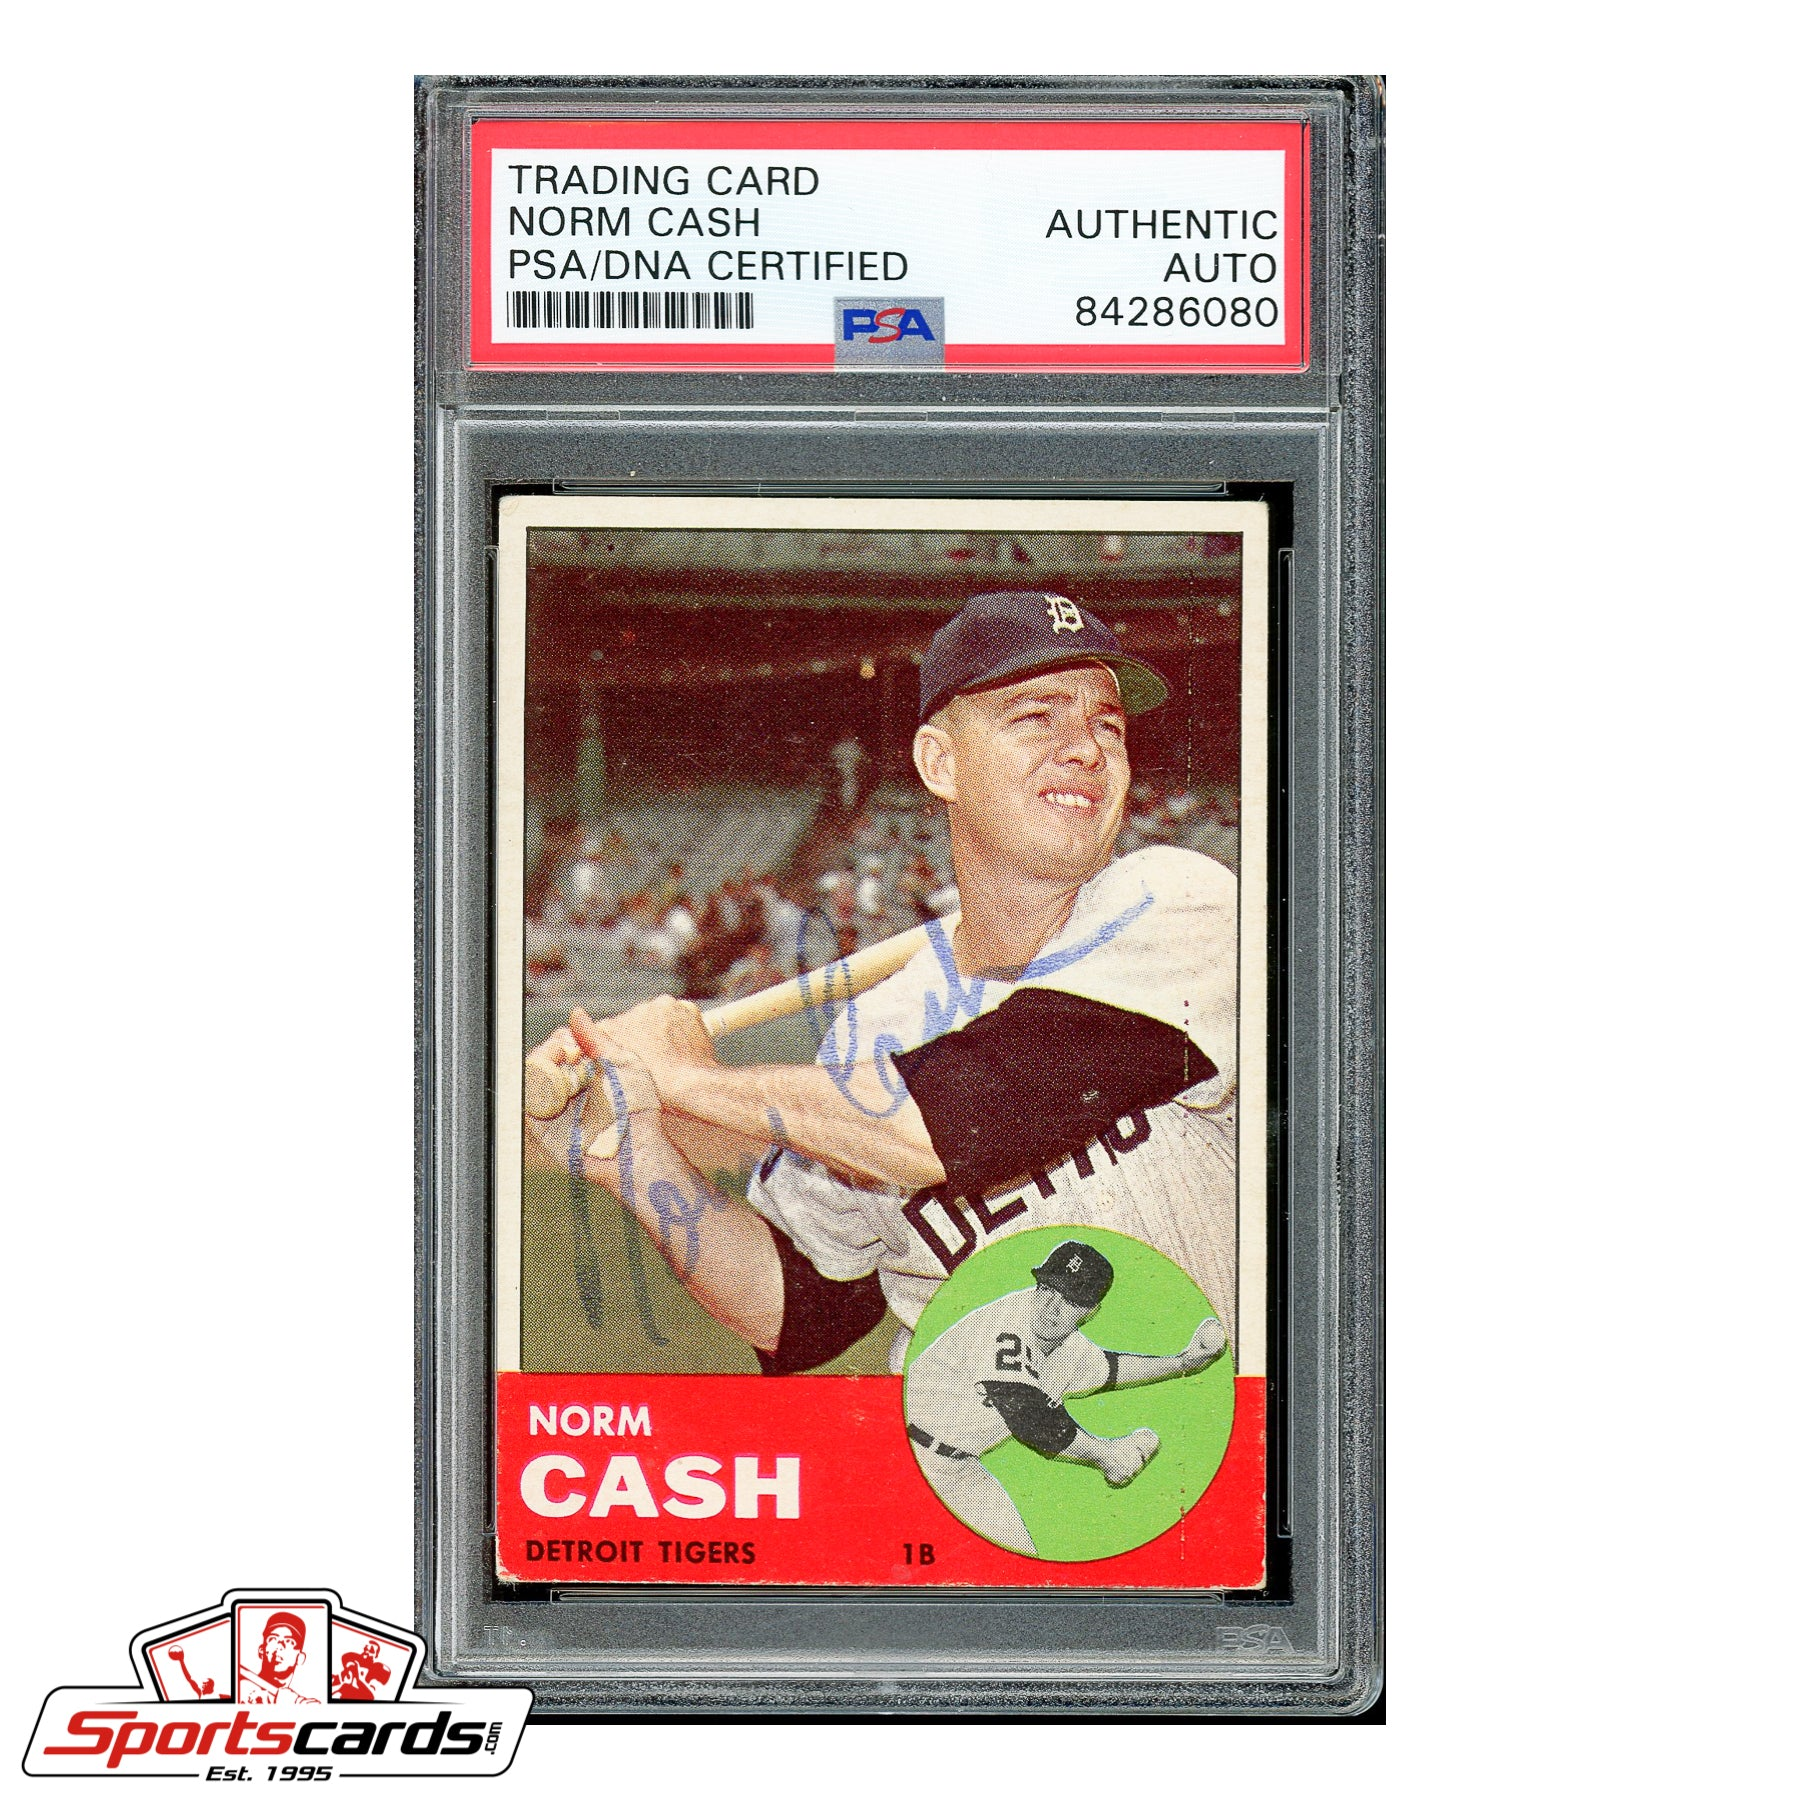 Norm Cash Signed Auto 1963 Topps Card #445 - PSA/DNA